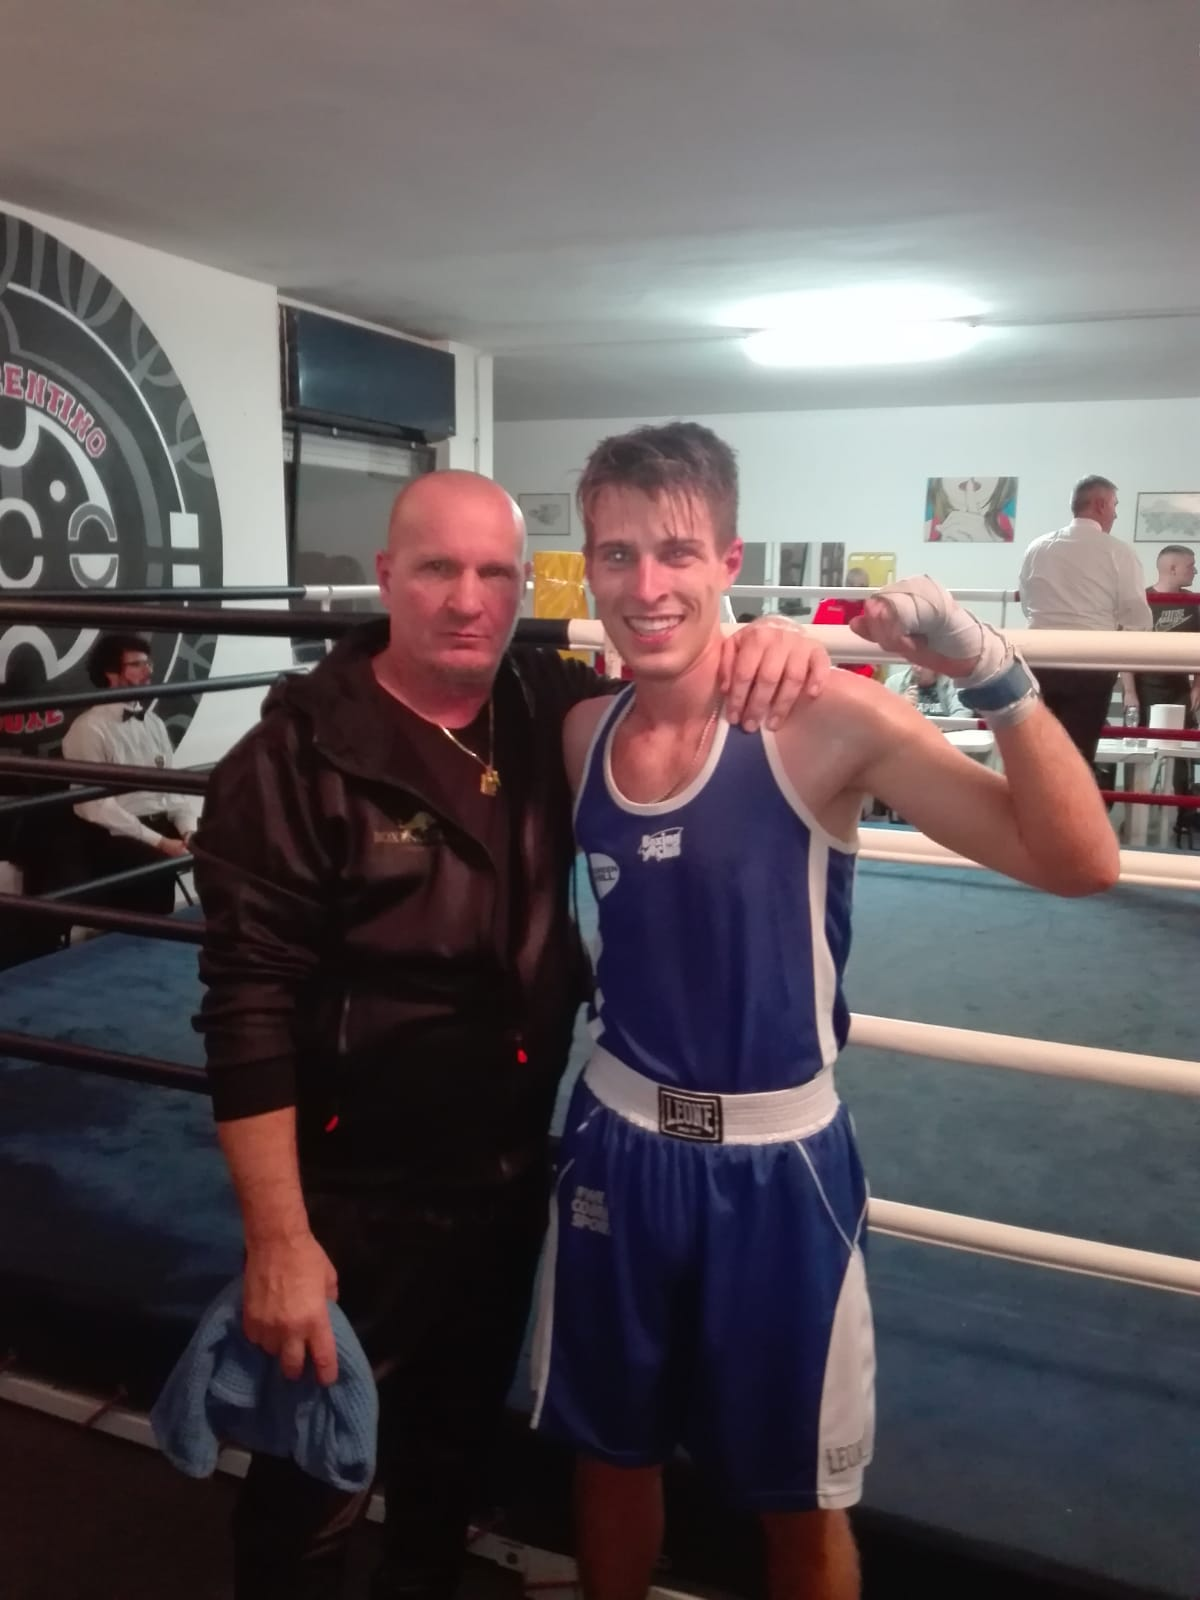 Foto Galleria SPORTMANIA 2019 - Gare Boxe Boxing Club